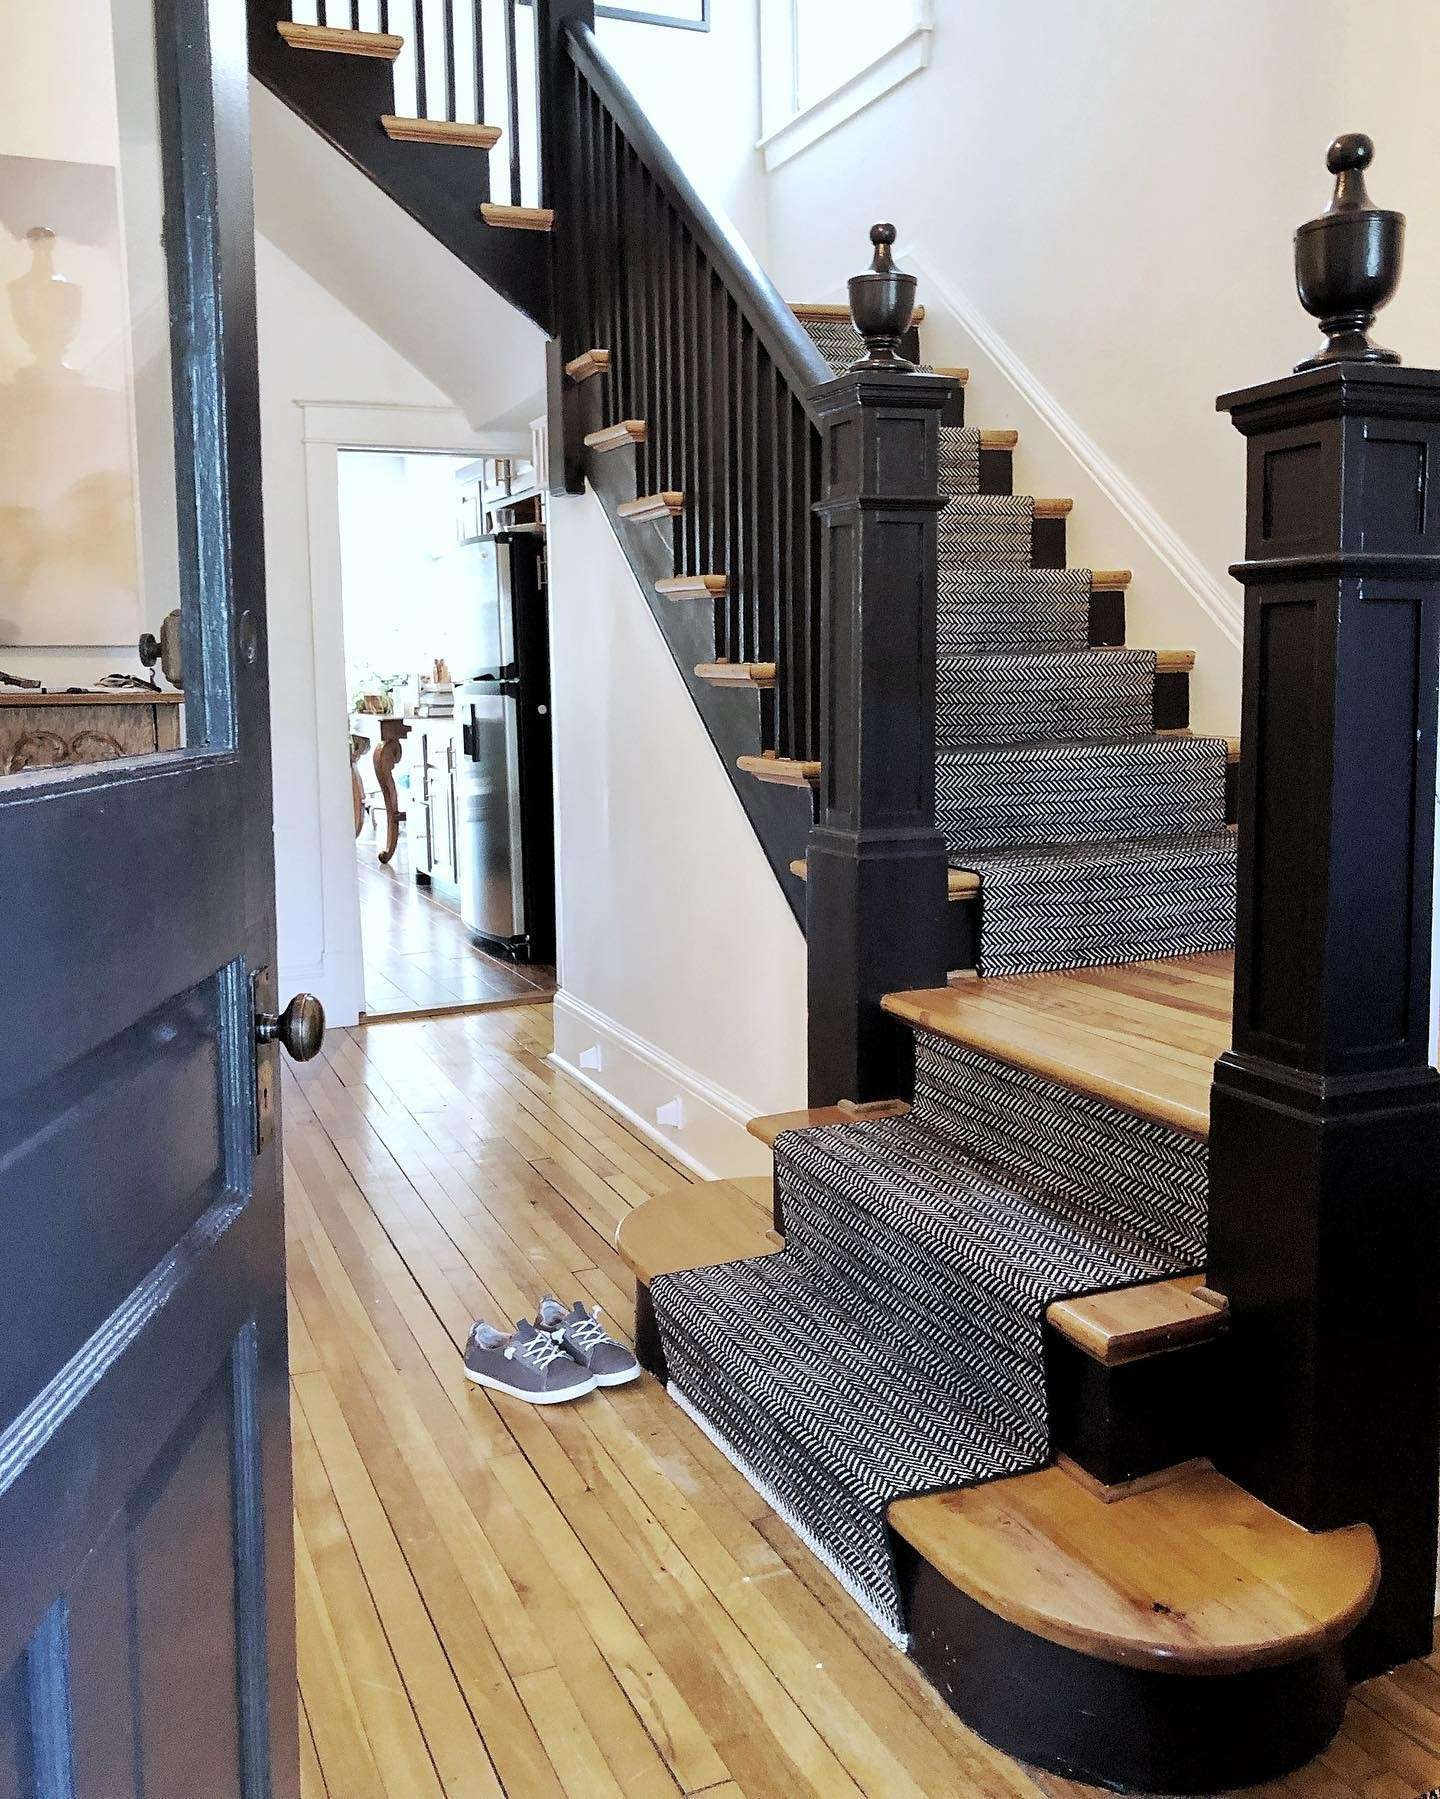 How To Choose A Stair Runner Rug Annie Selke | Thin Carpet For Stairs | Area Rug | Grey | Stair Runners | Flooring | Hallway